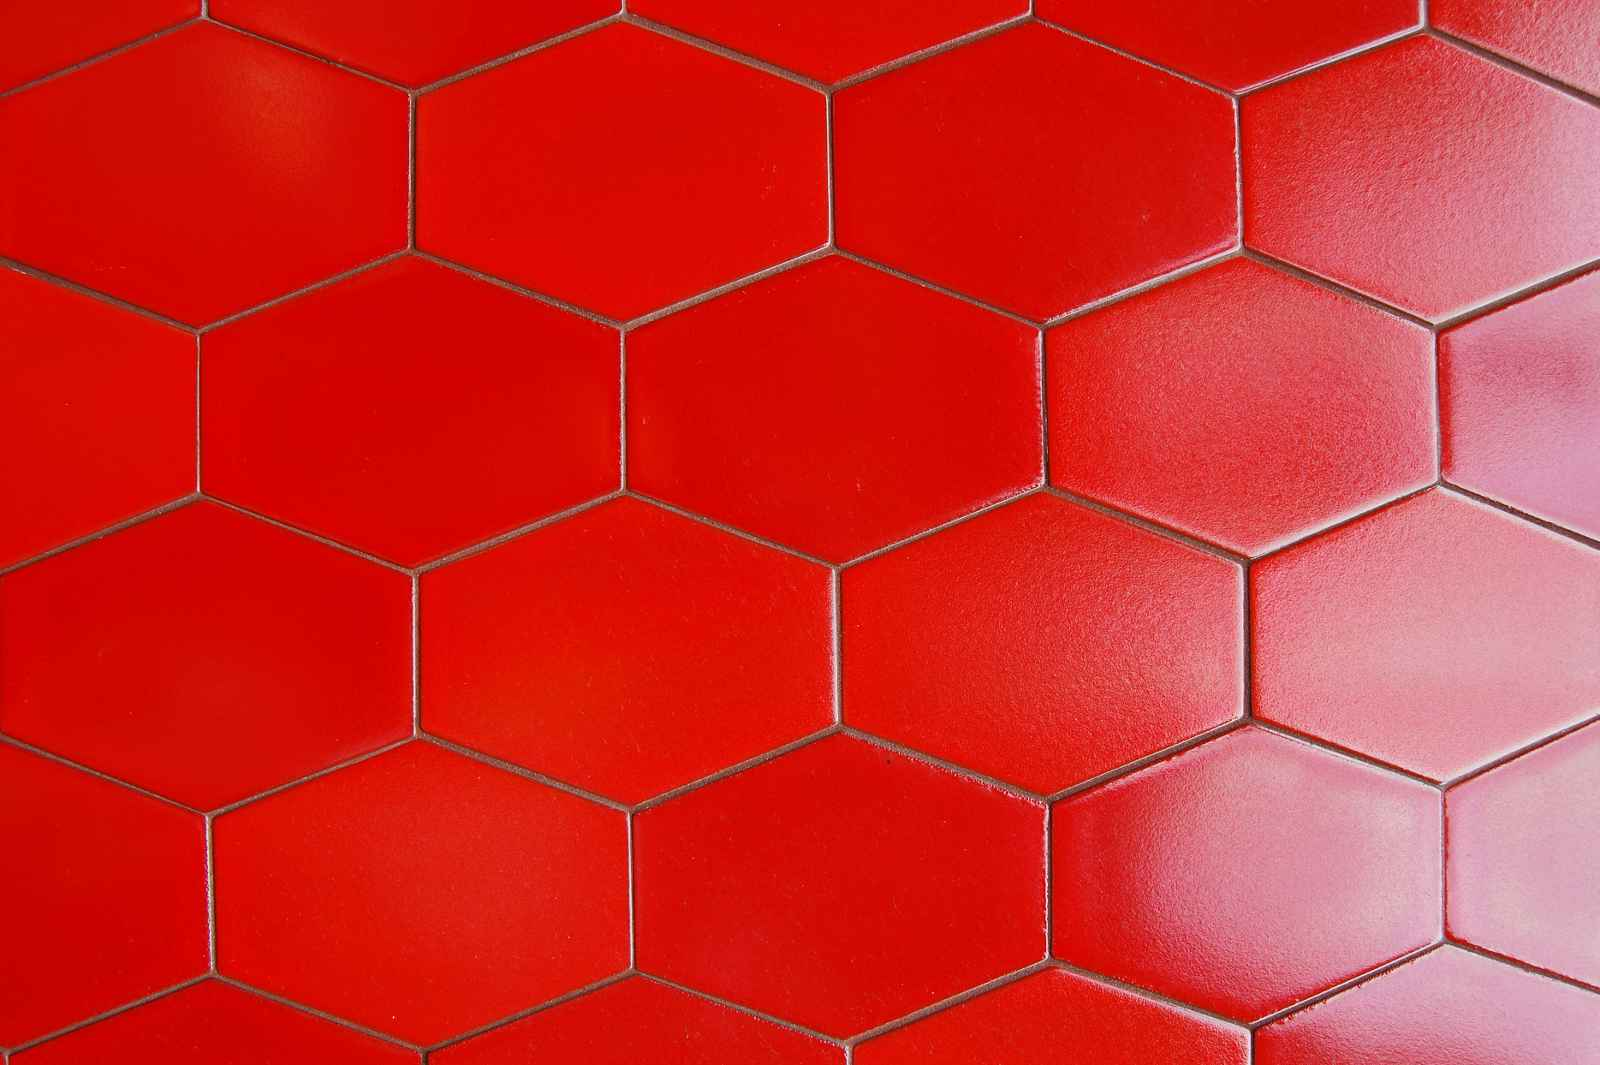 Red Ceramic Floor Tiles That Bright And Clean